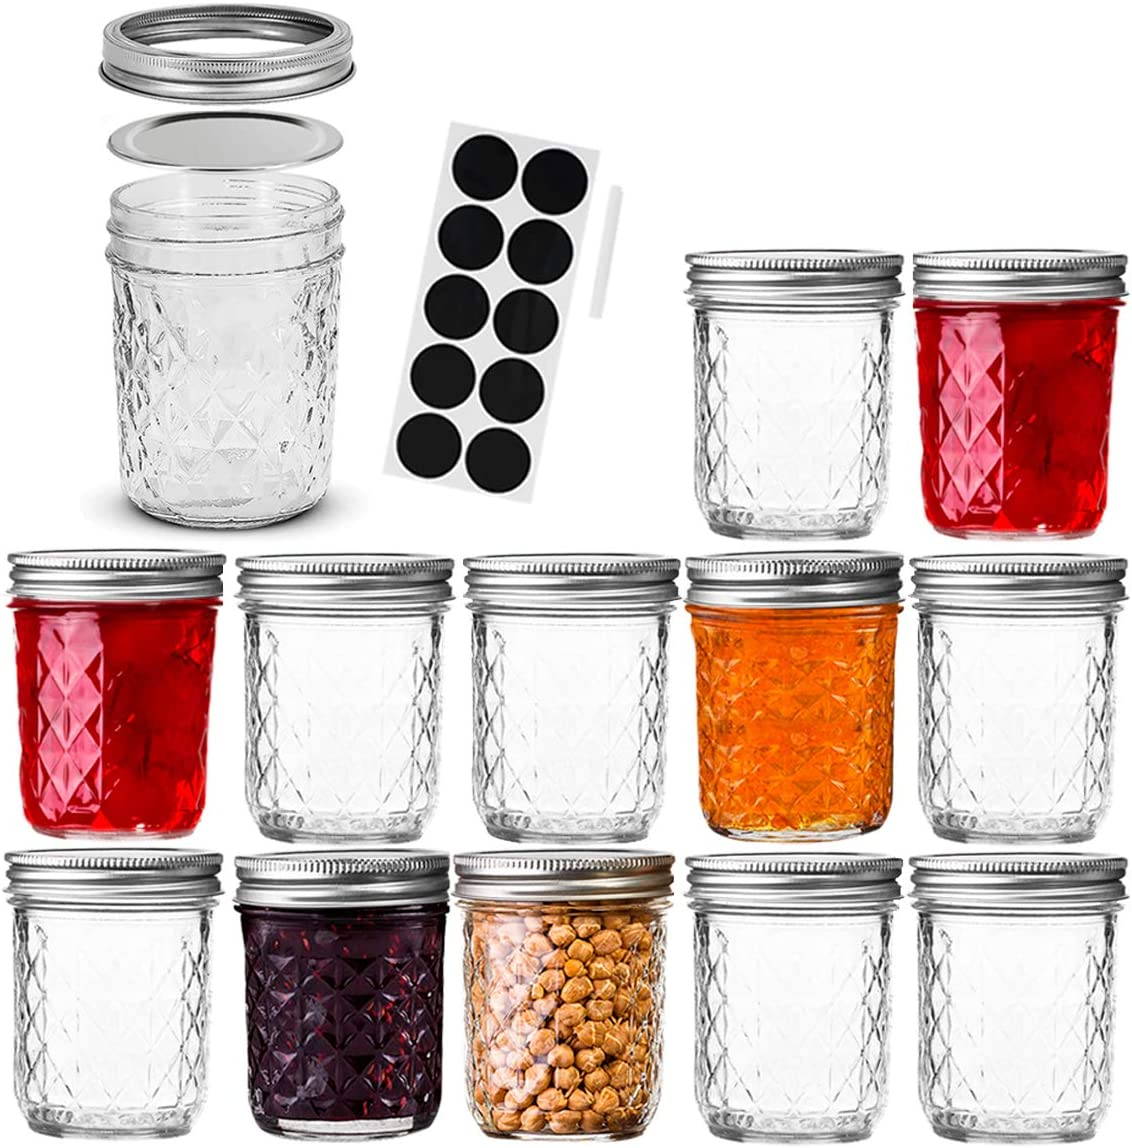 FRUITEAM 6 oz Mason Jars with Lids and Bands-Set of 12, Quilted Crystal Jars Ideal for Jams, Jellies, Conserves, Preserves, Fruit Syrups, Chutneys, and Pizza Sauce